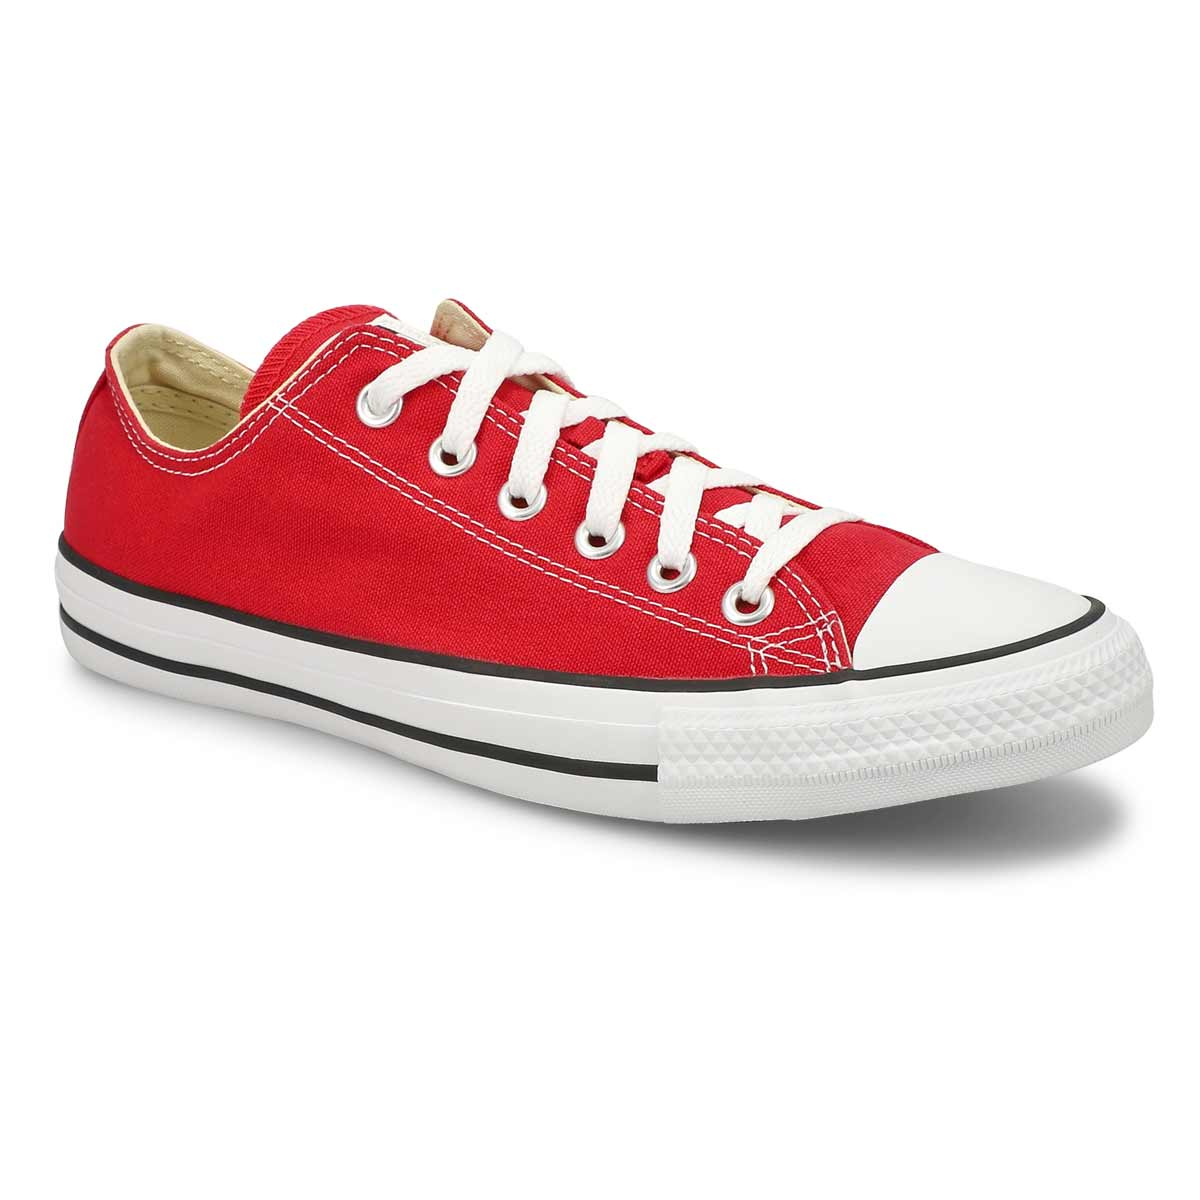 Men's Chuck Taylor All Star Core Sneaker - Red